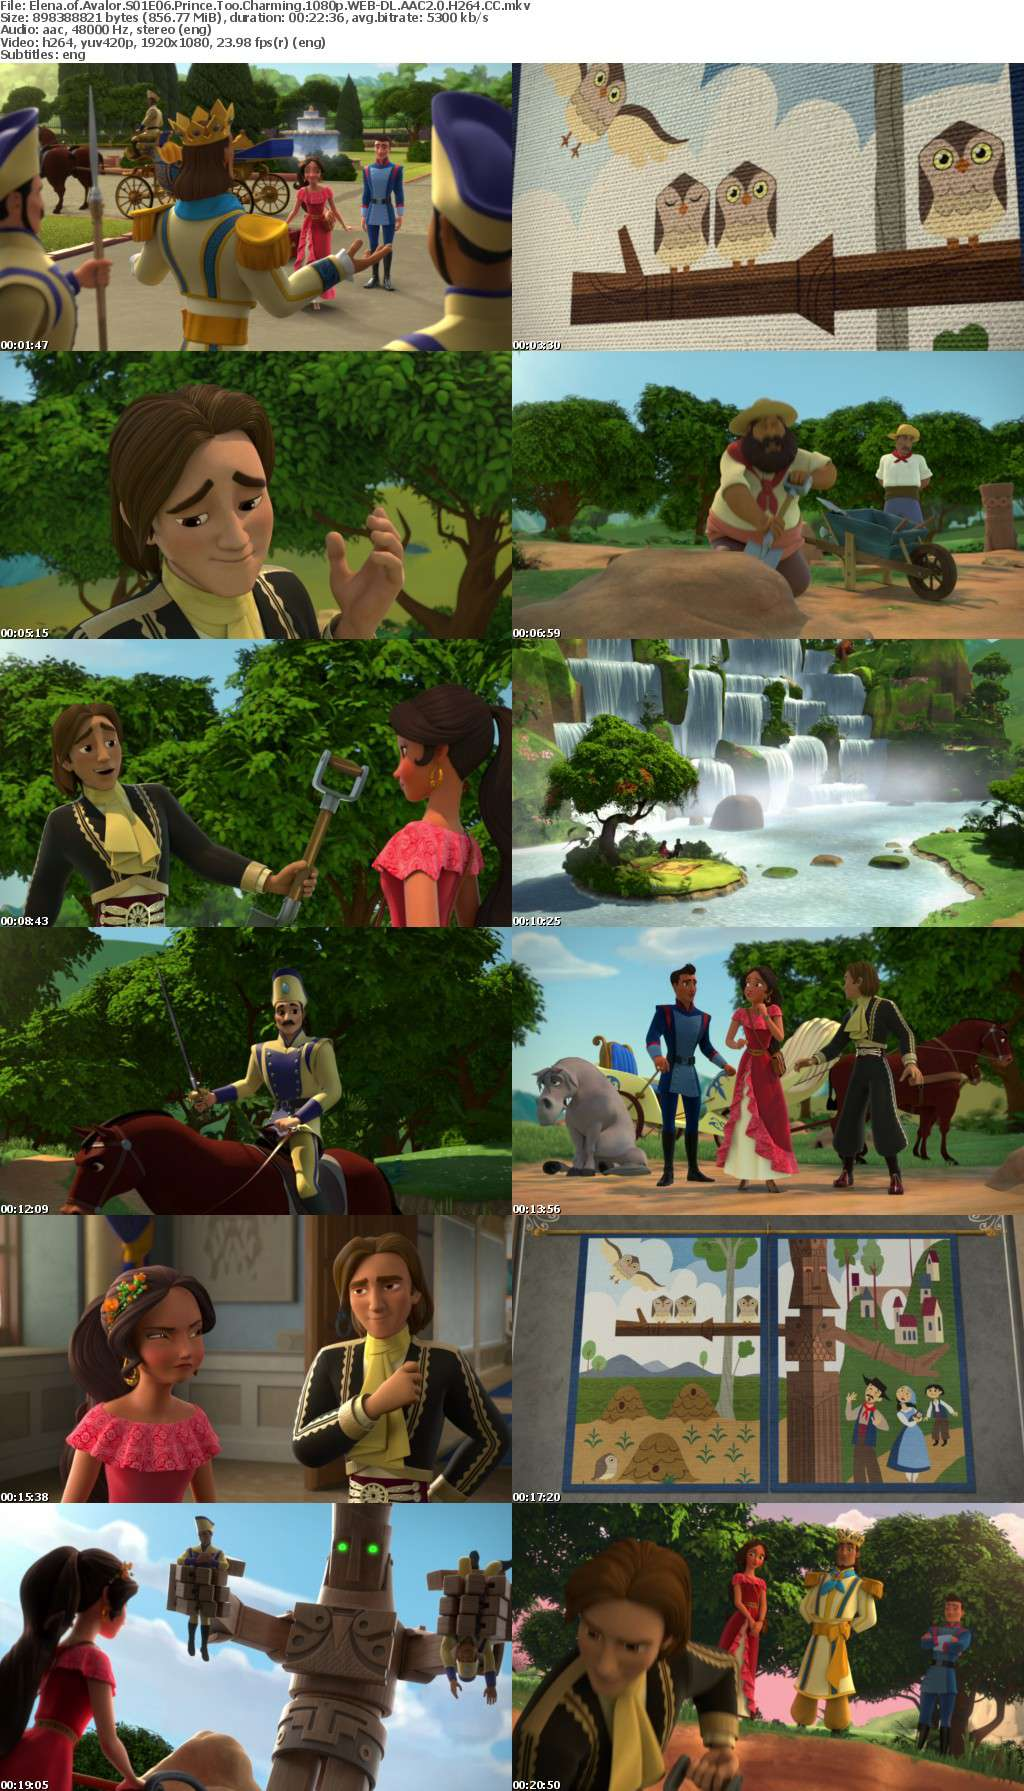 Elena of Avalor S01E06 Prince Too Charming 1080p WEB-DL AAC2 0 H264 CC